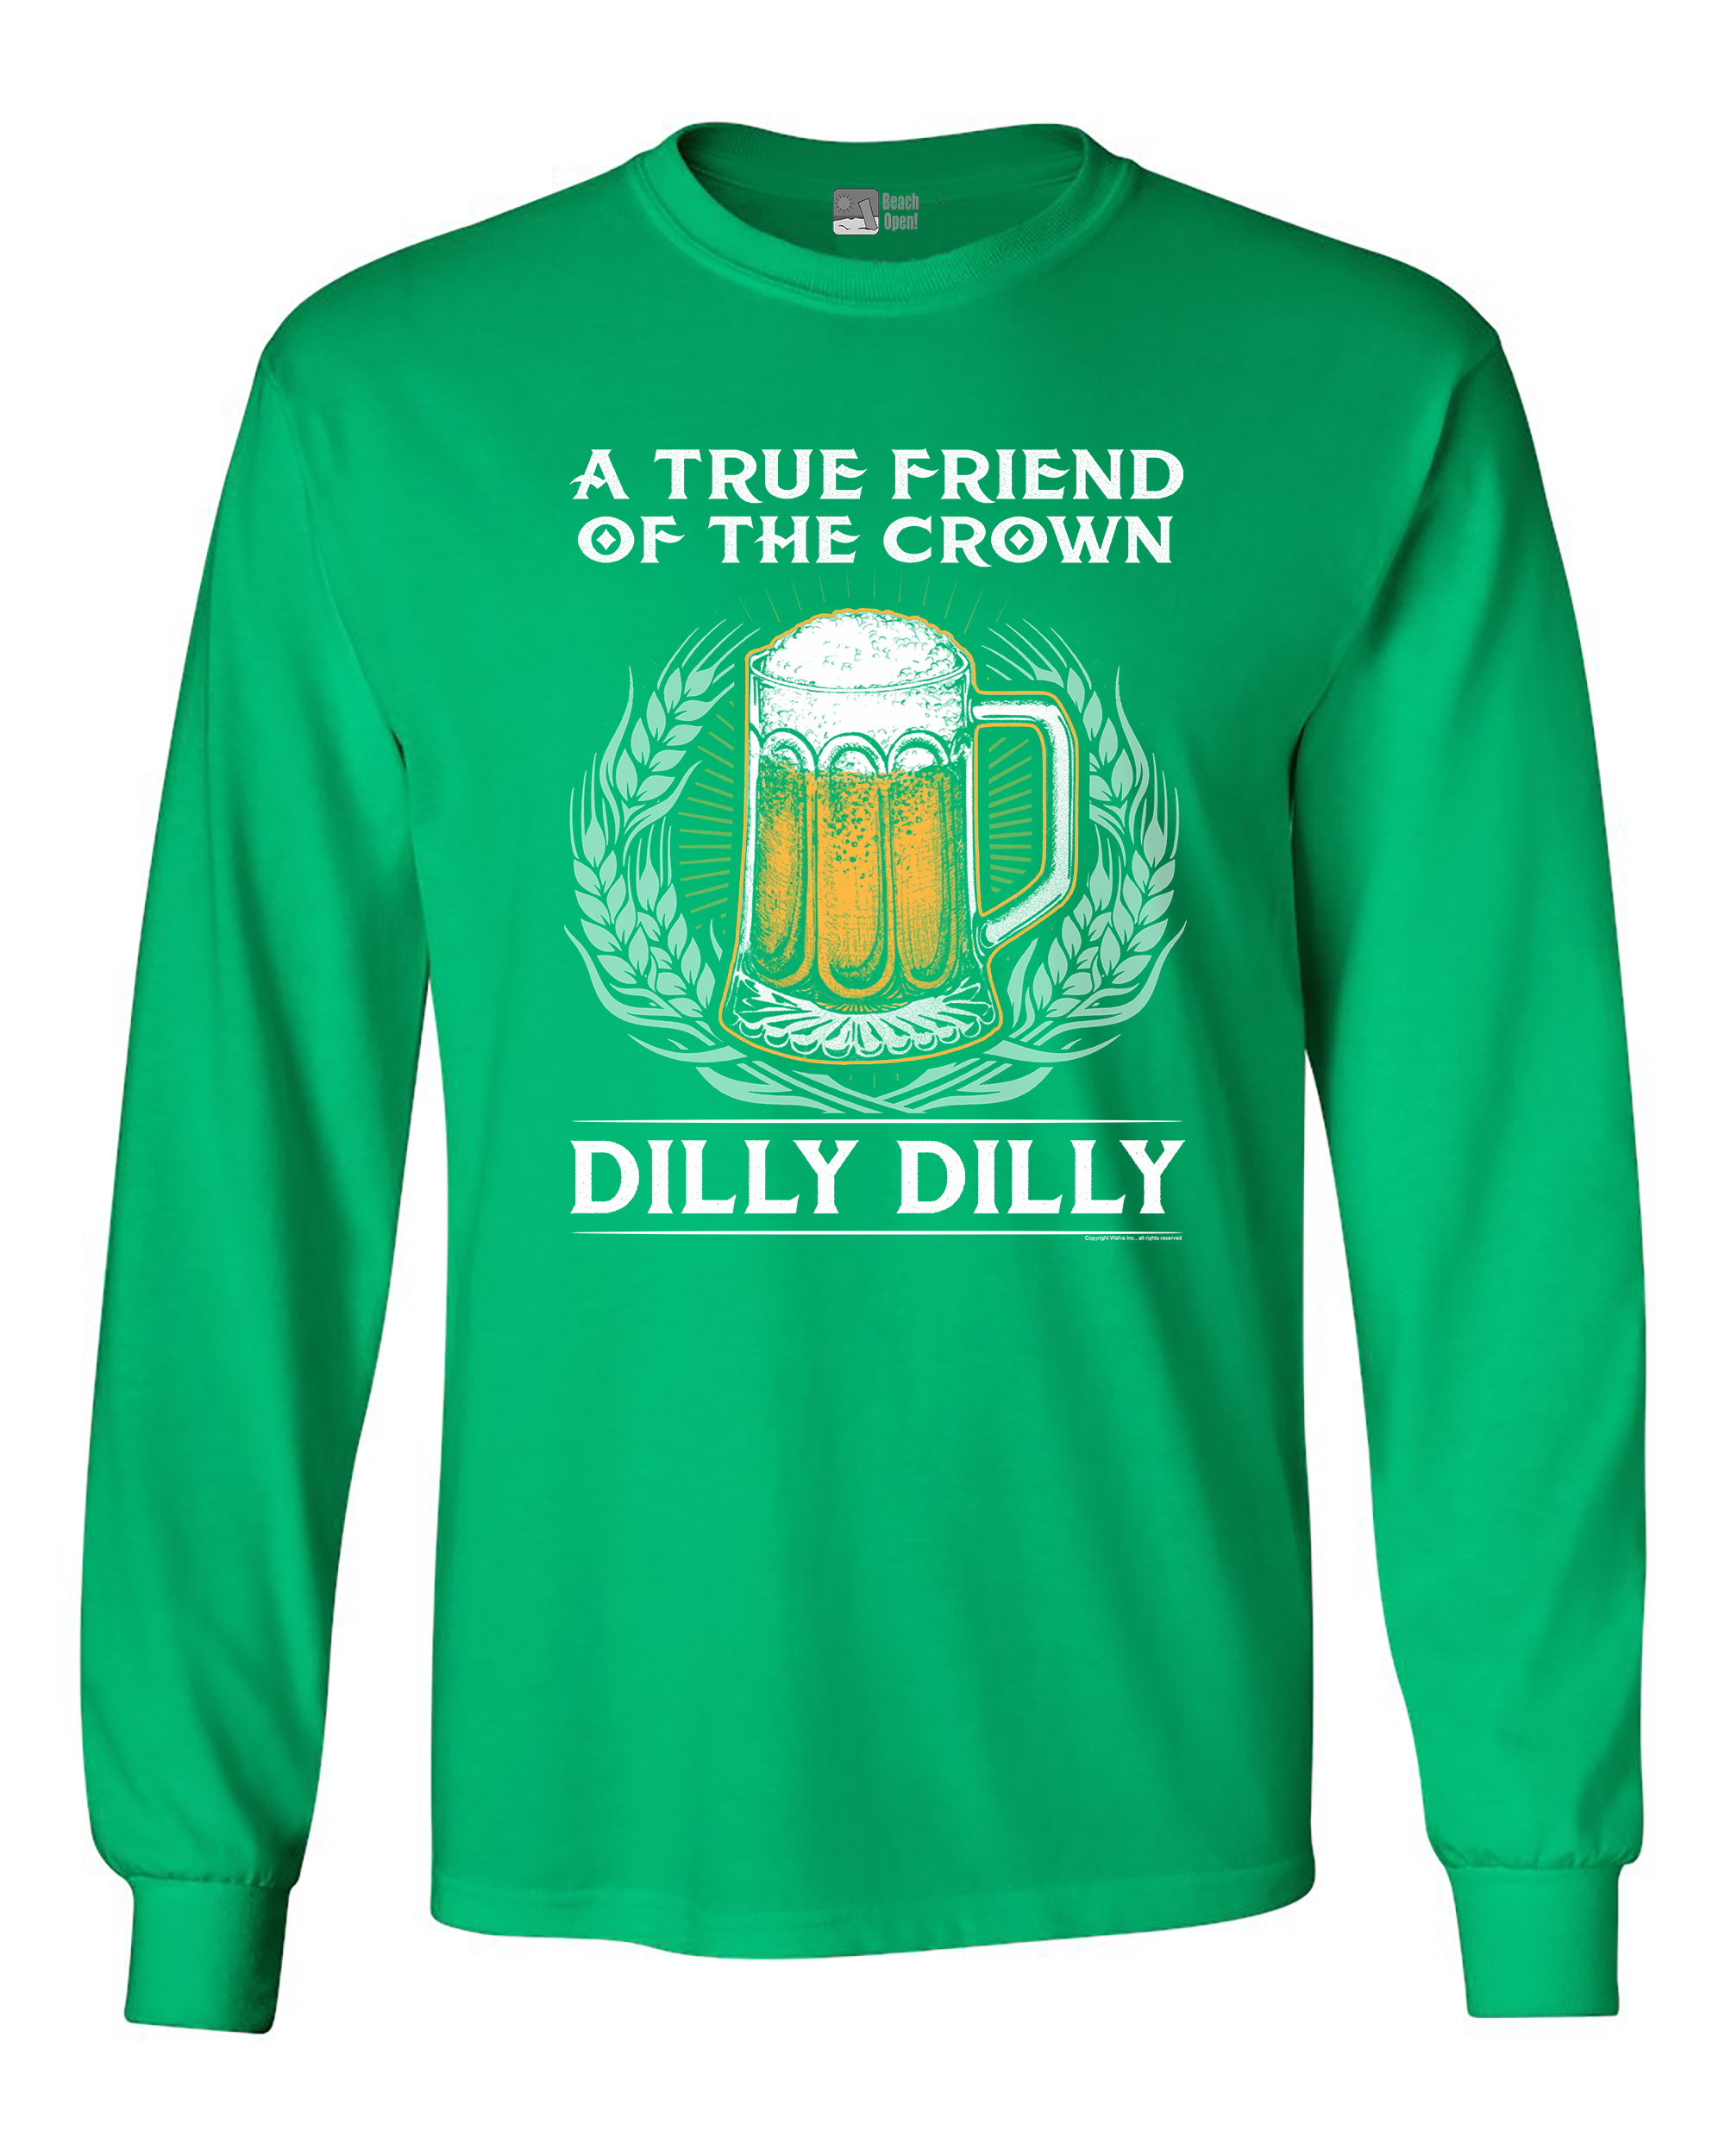 Long Sleeve Adult T-Shirt A True Friend Of The Crown Dilly Dilly Beer Funny DT